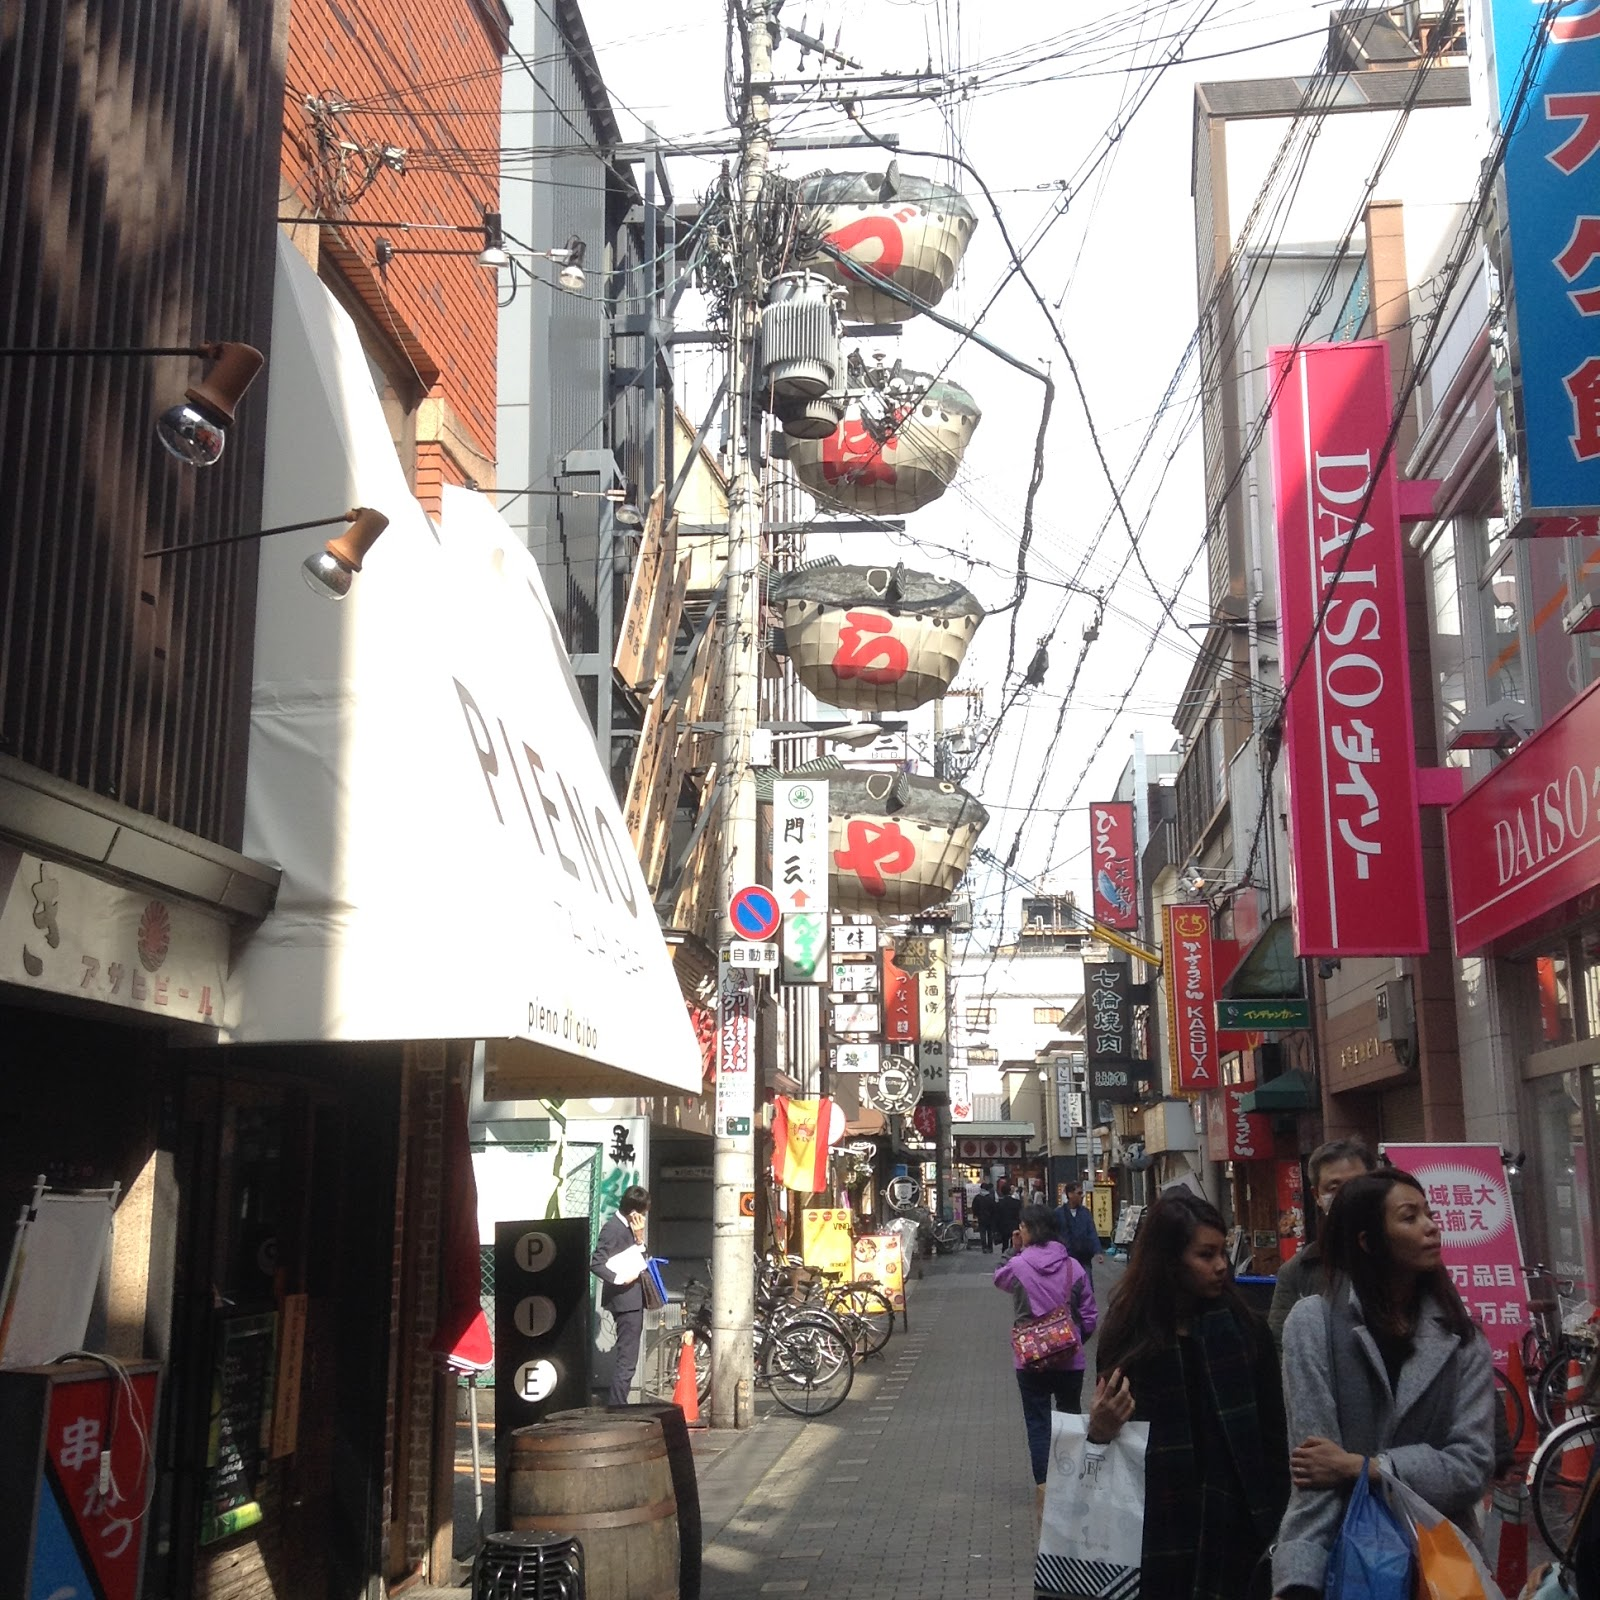 Osaka side street with Daiso and fugu fish signs